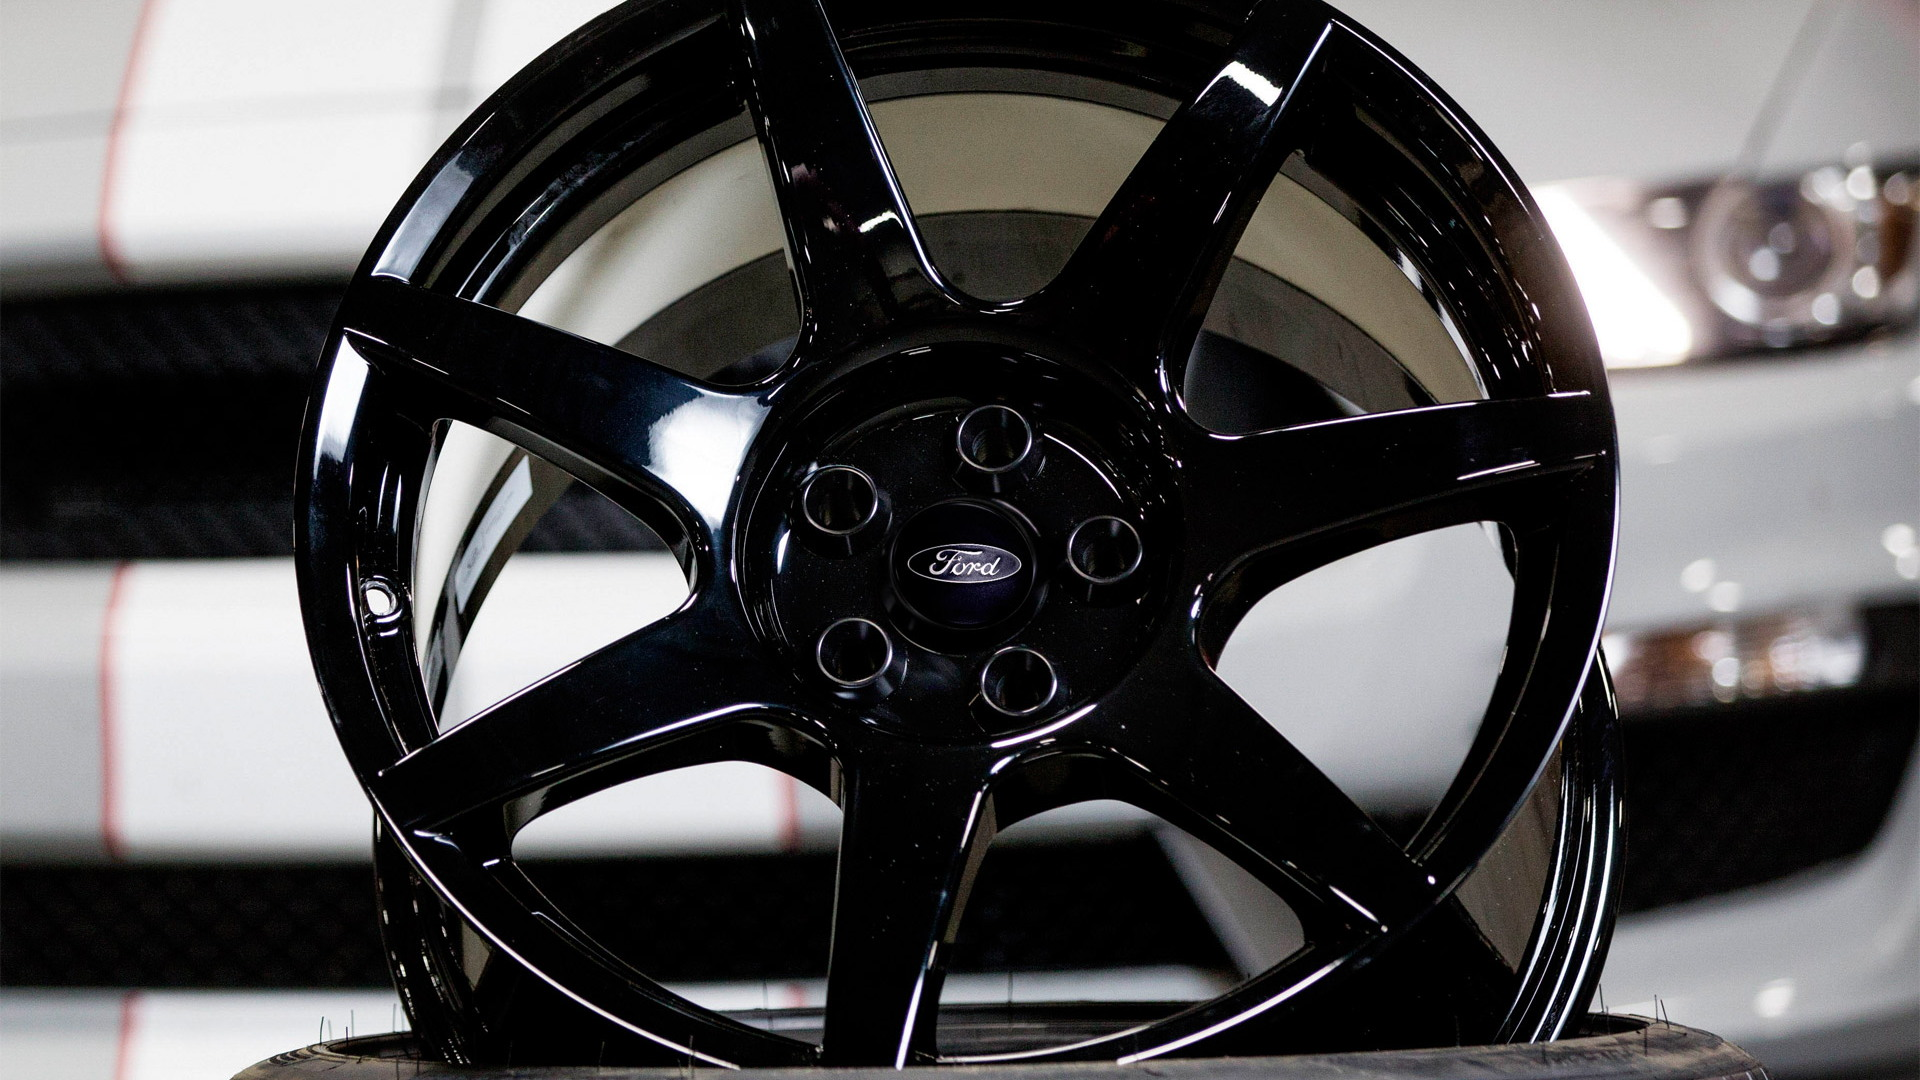 2016 Ford Mustang Shelby GT350R's carbon fiber wheels